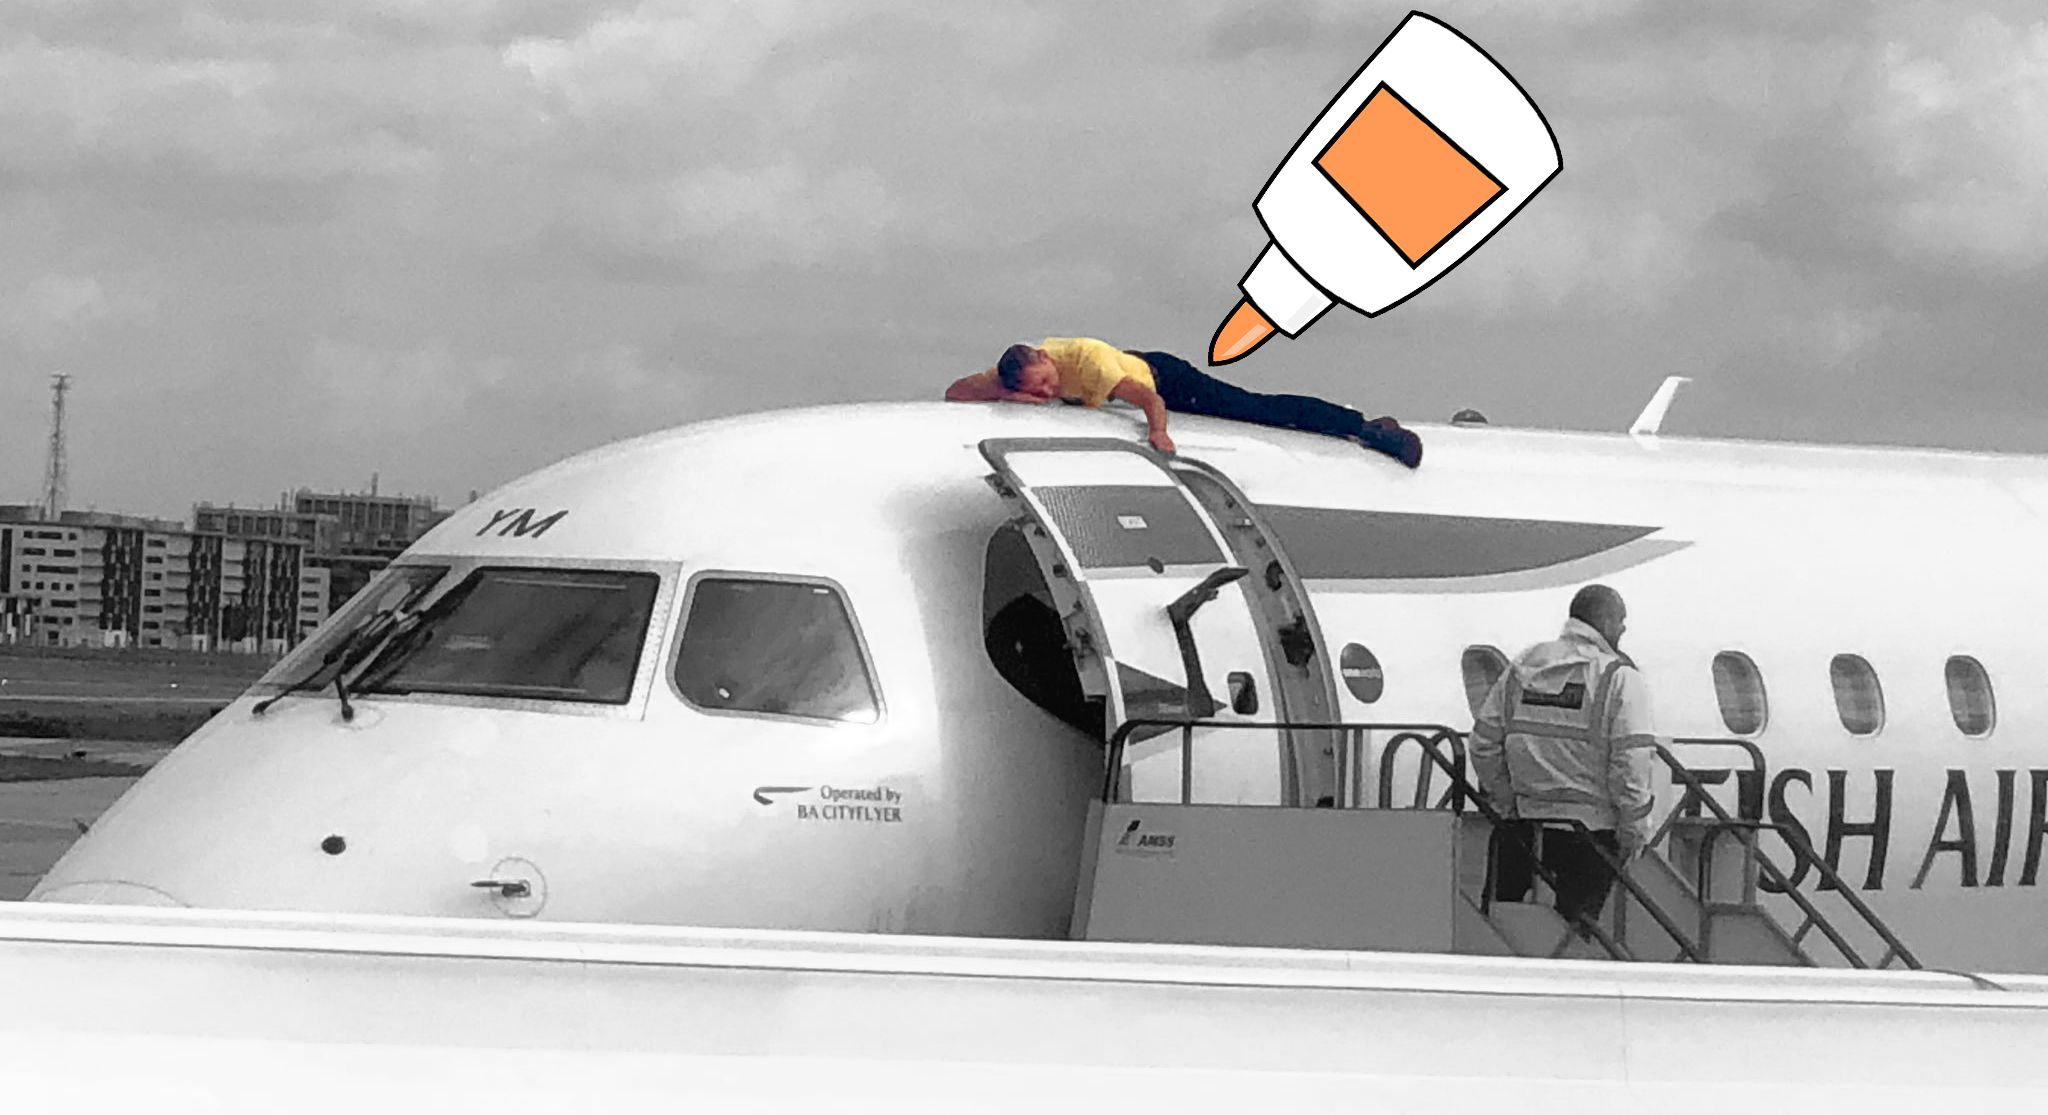 How to Glue Yourself to a Plane, According to Science